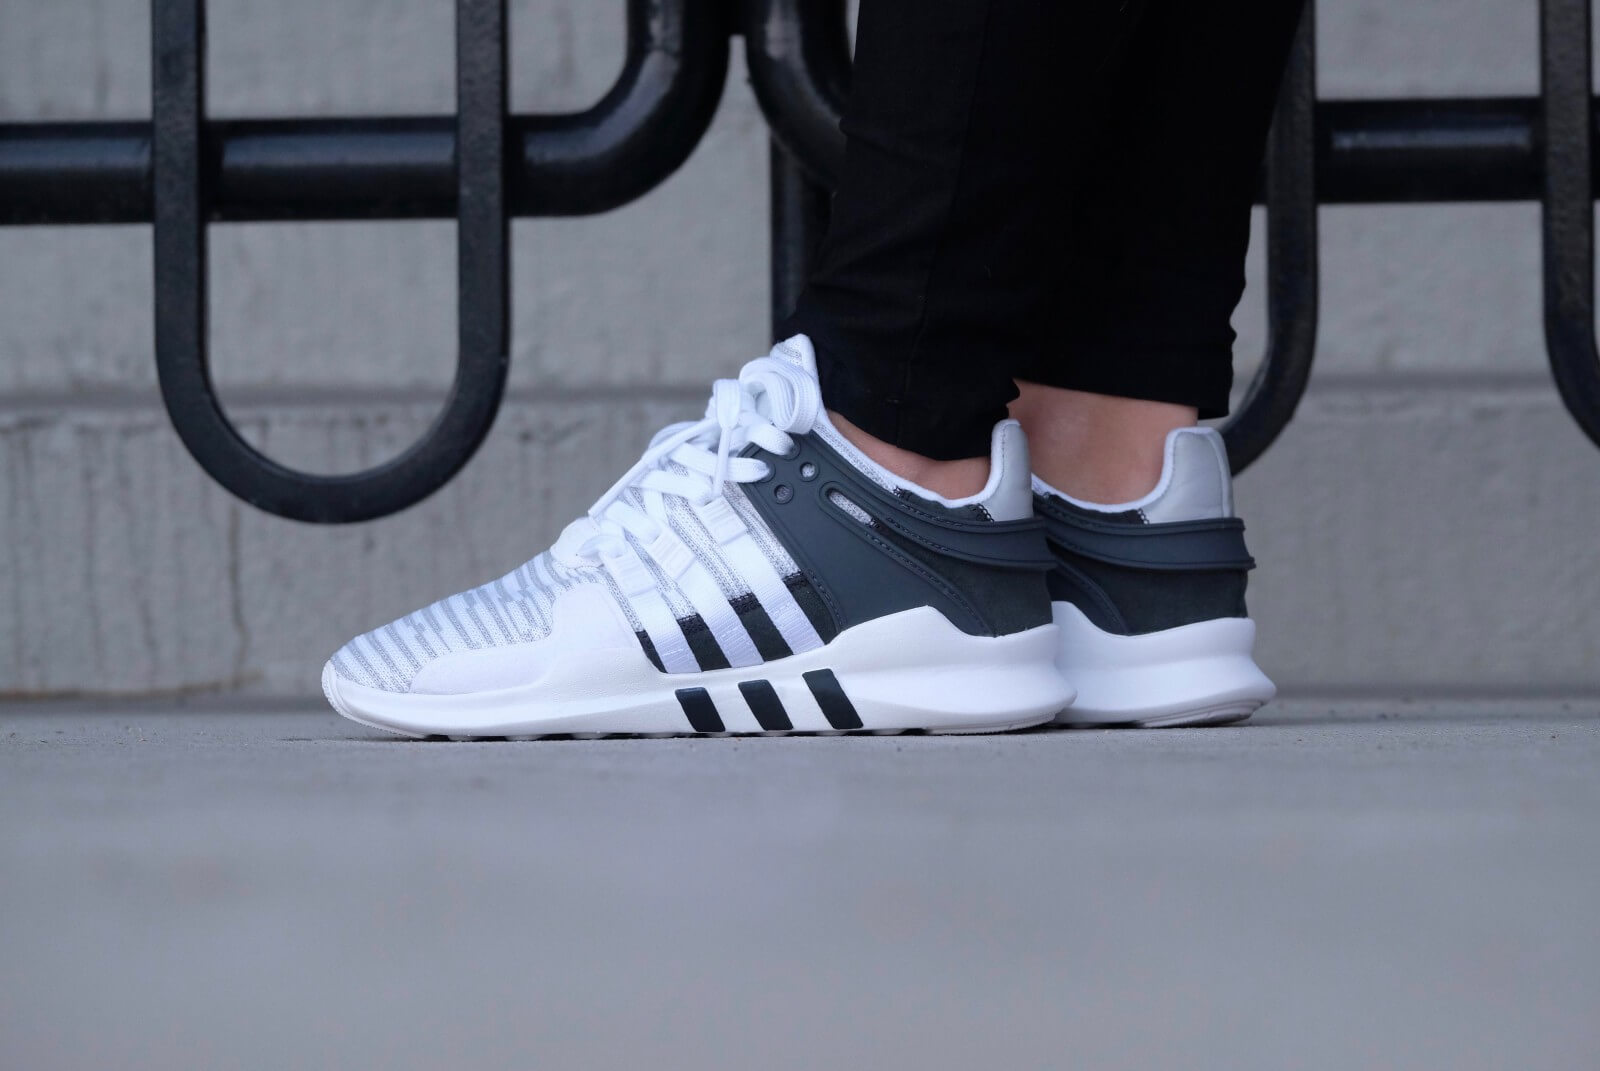 Adidas EQT Support 93/16 (Core Black & White) End